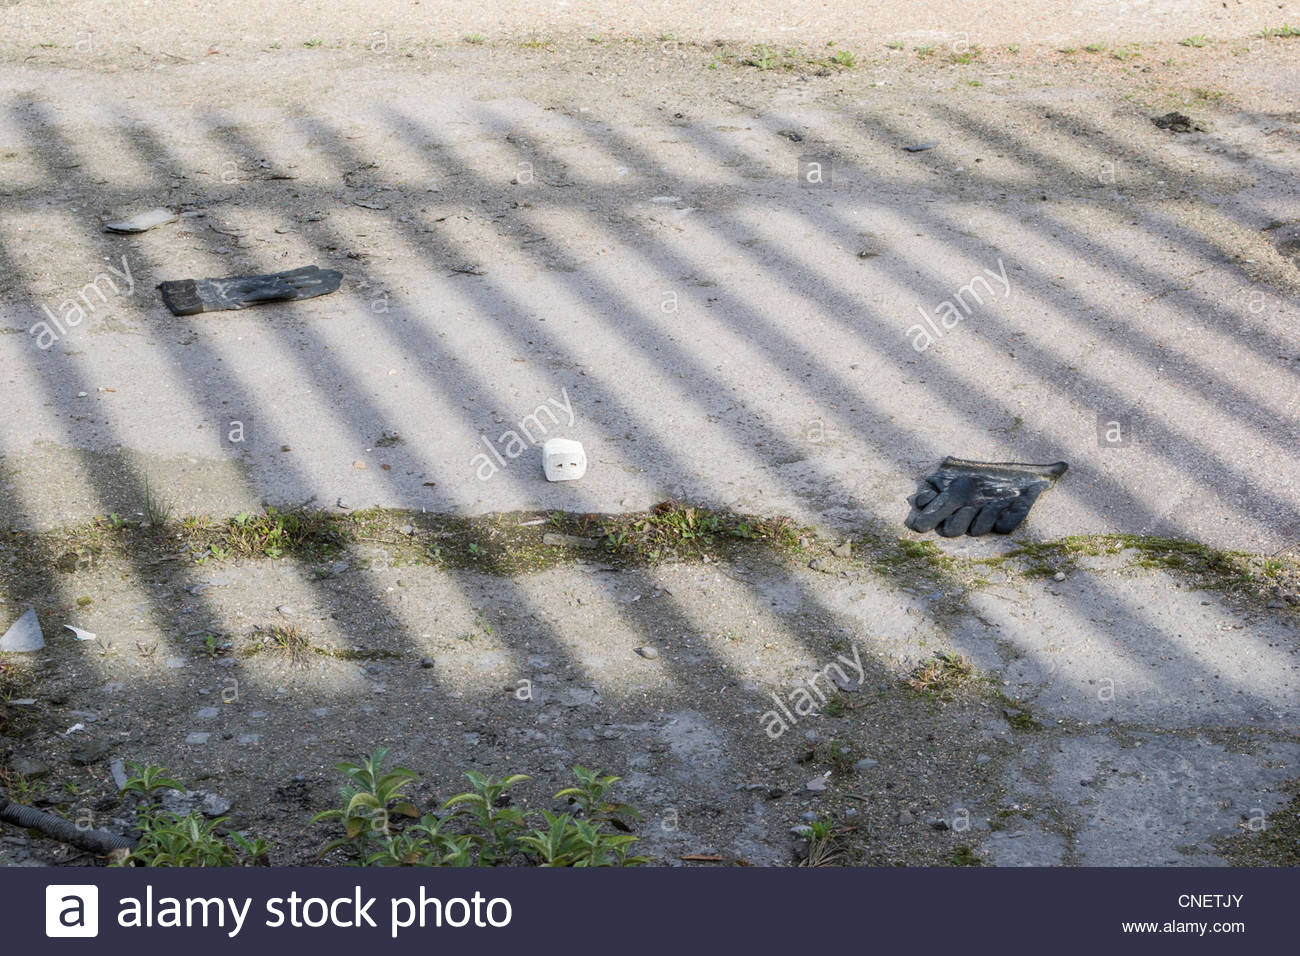 Shadow of a fence falls on derelict land with discarded gloves littering the ground - Stock Image